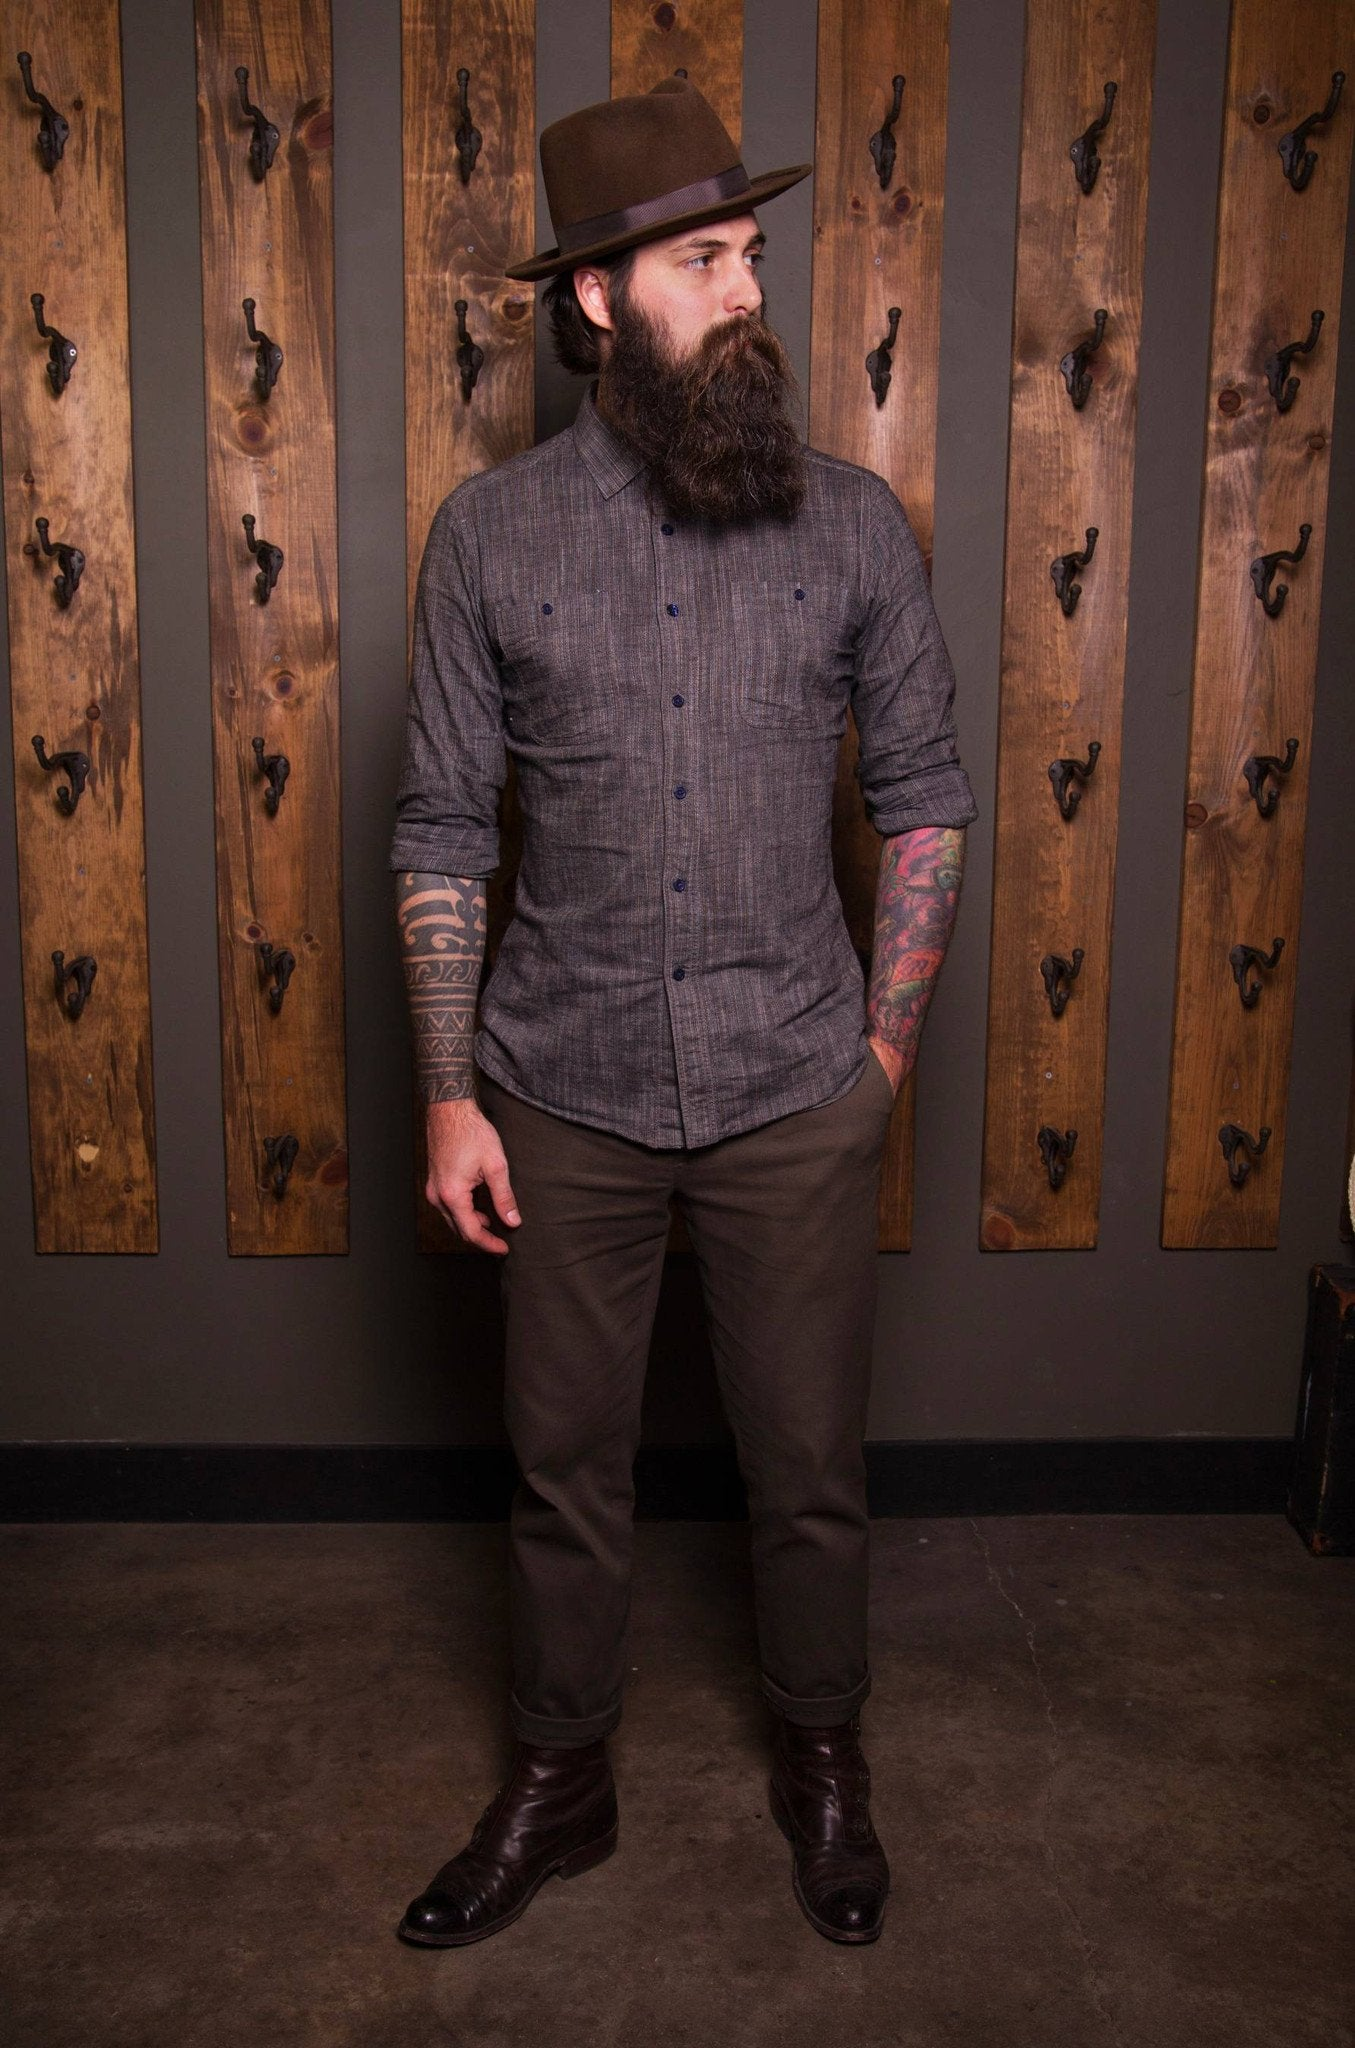 Earl Grey Work shirt-Bykowski Tailor & Garb tailored fit vintage inspired Railroad prohibition Made in USA Handcrafted heritage clothing Edwardian Denim Casual 1930's 1920's 1910's